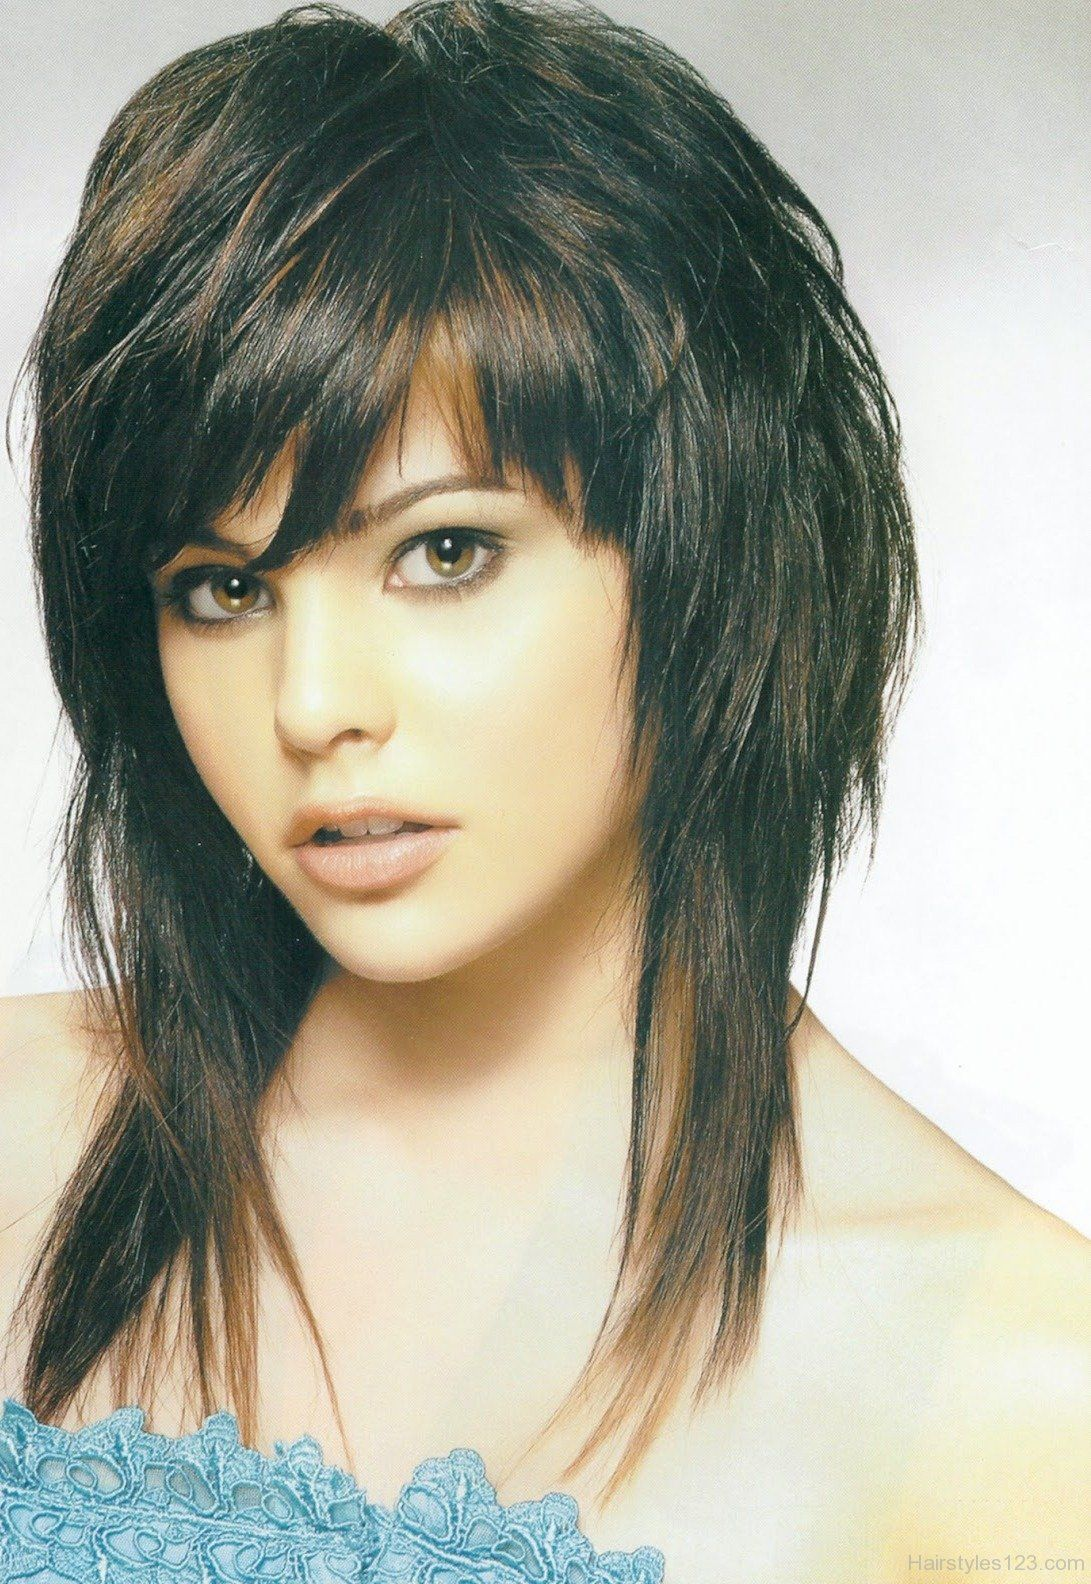 Cute Emo Hairstyles Vintage Hairstyles Page 5 Make Me Pretty